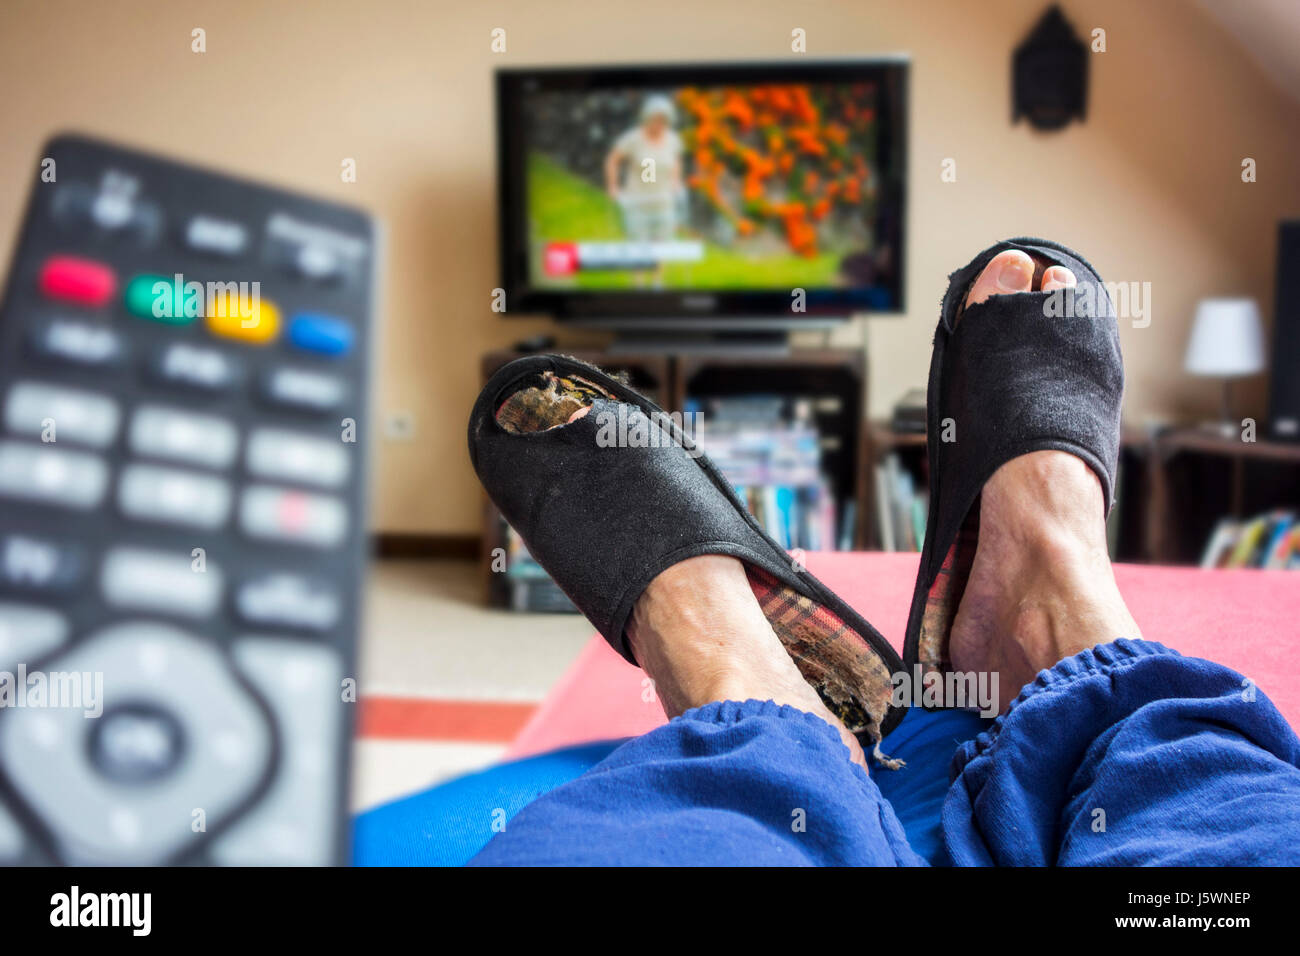 Remote control and couch potato, lazy man in comfy chair